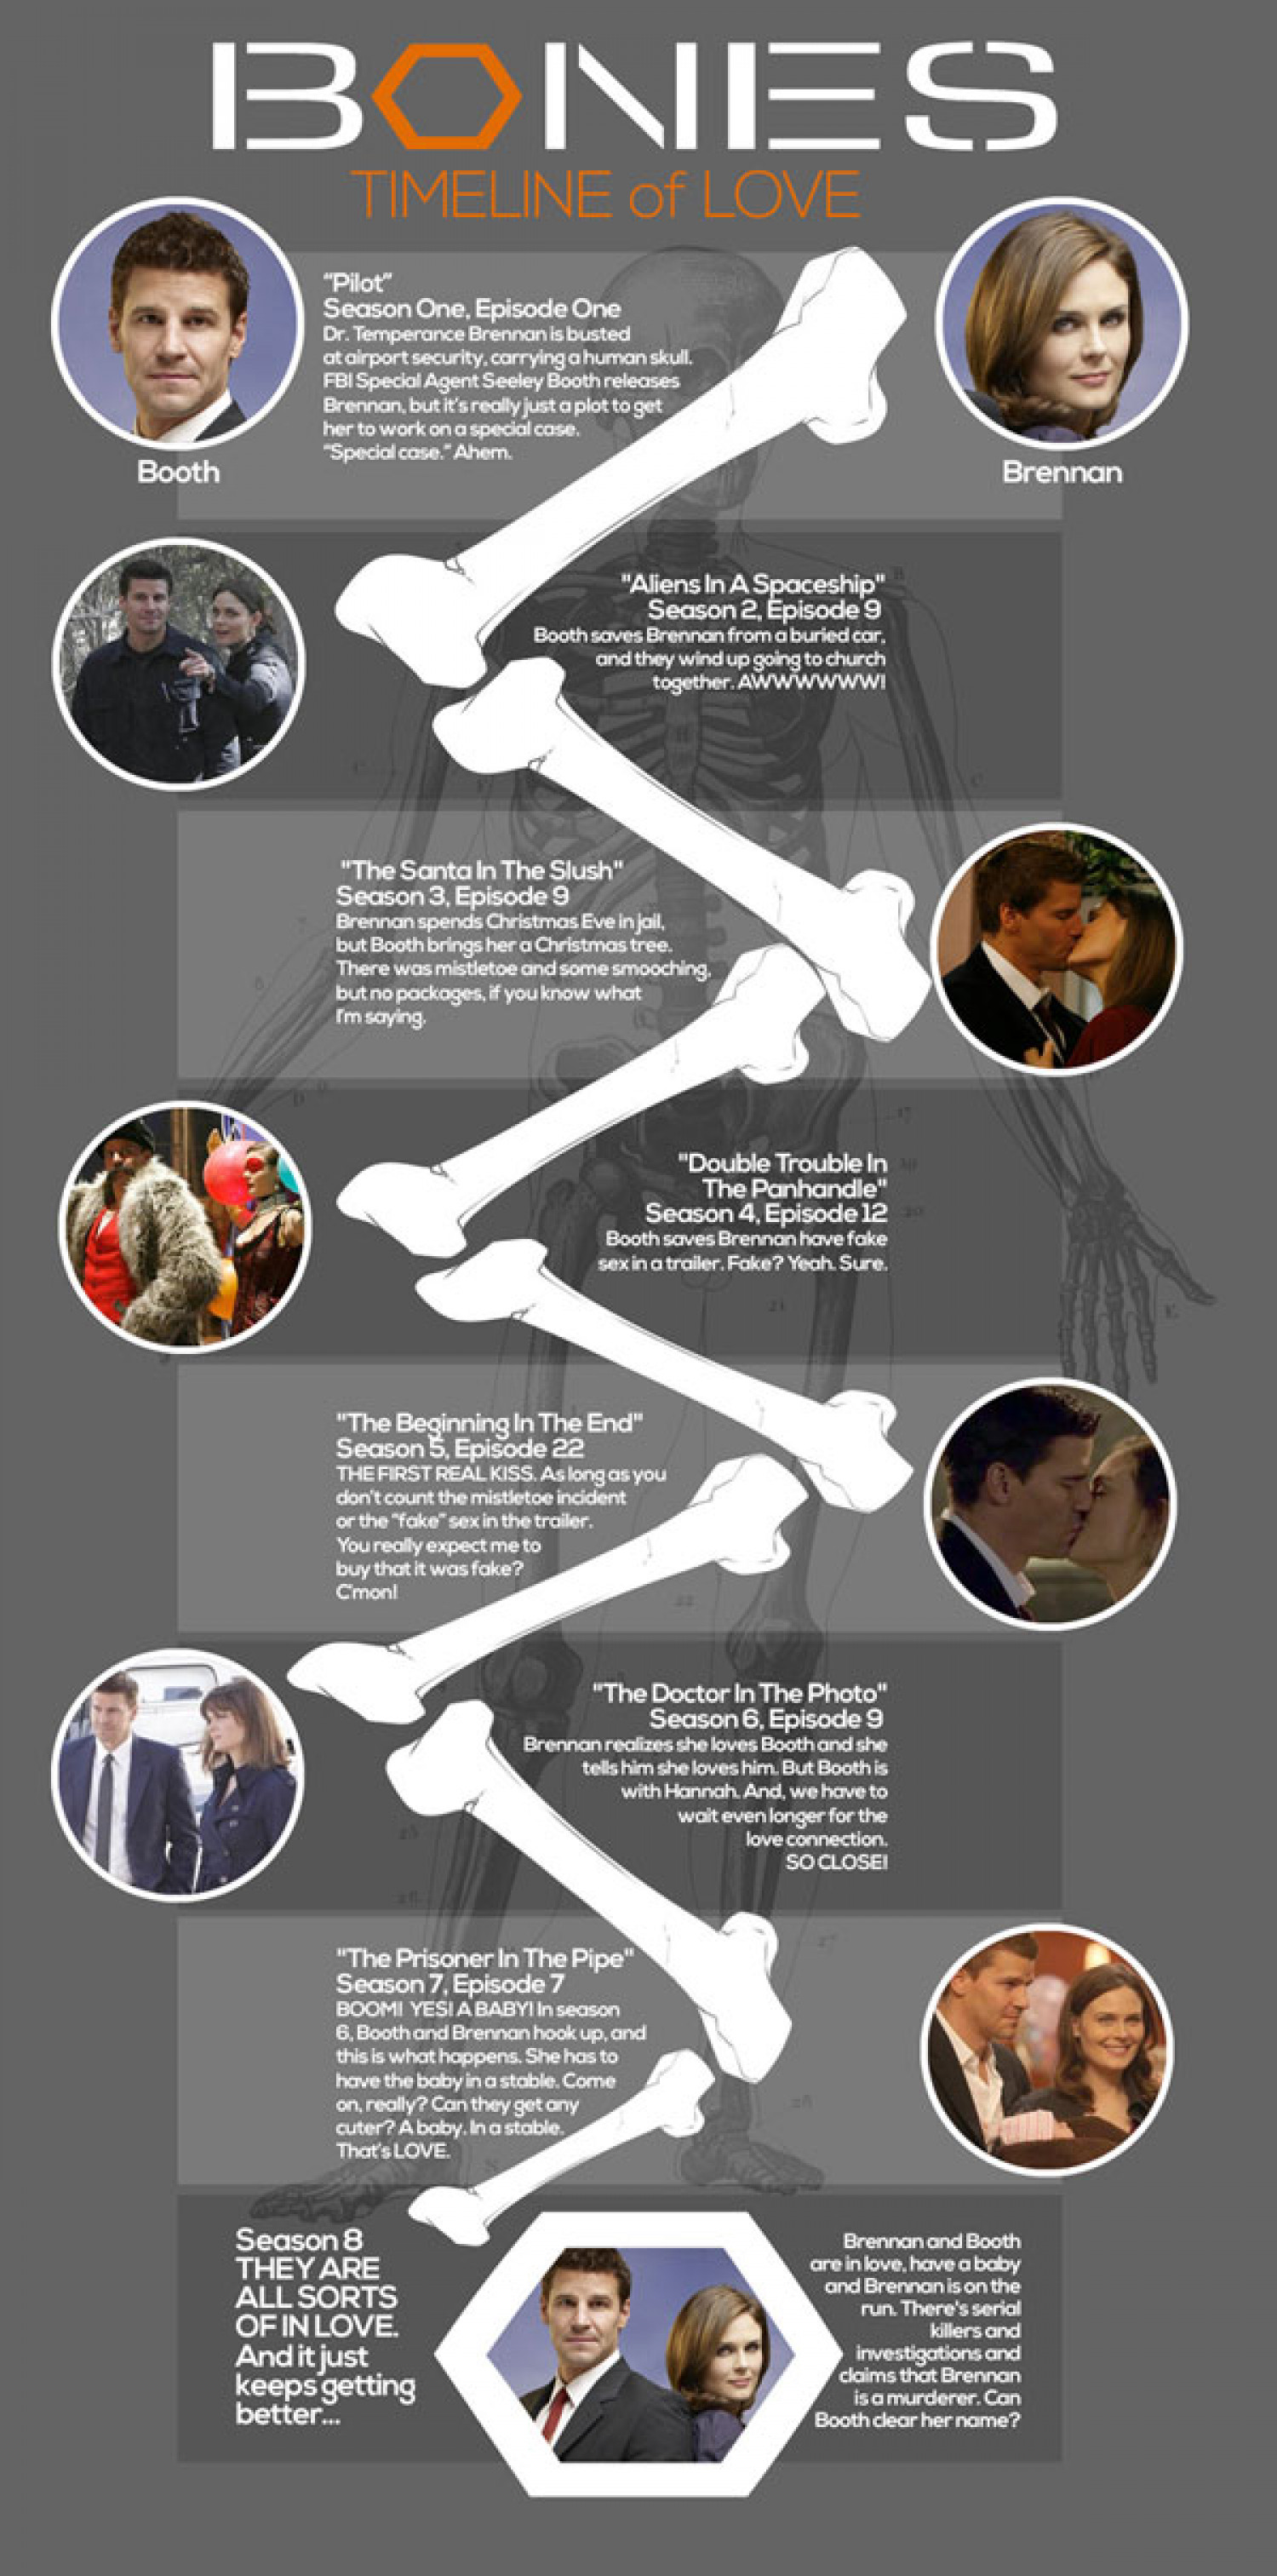 bones brennan and booth relationship timeline gift